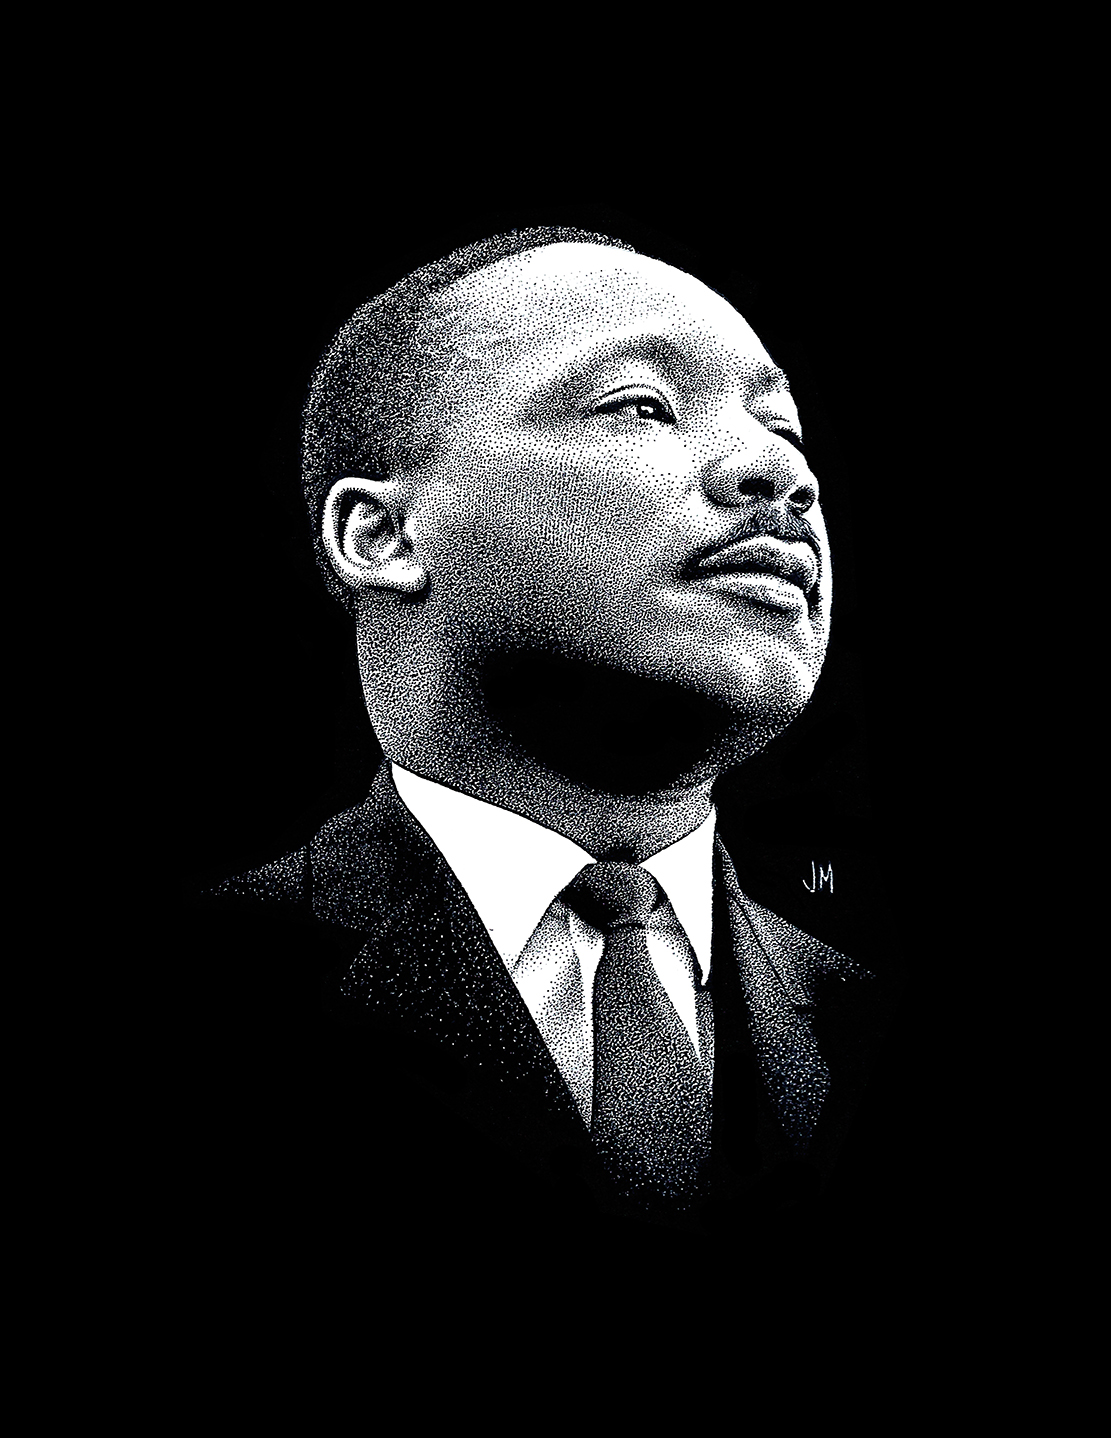 """view essays on martin luther king jr """"a letter from birmingham jail"""" by martin luther king jr was written in the margins of a letter posted by the clergymen of alabama at this time that sparked his interest and while he inhabited the jail cell for parading around without a permit this time allowed him the ability to respond ."""